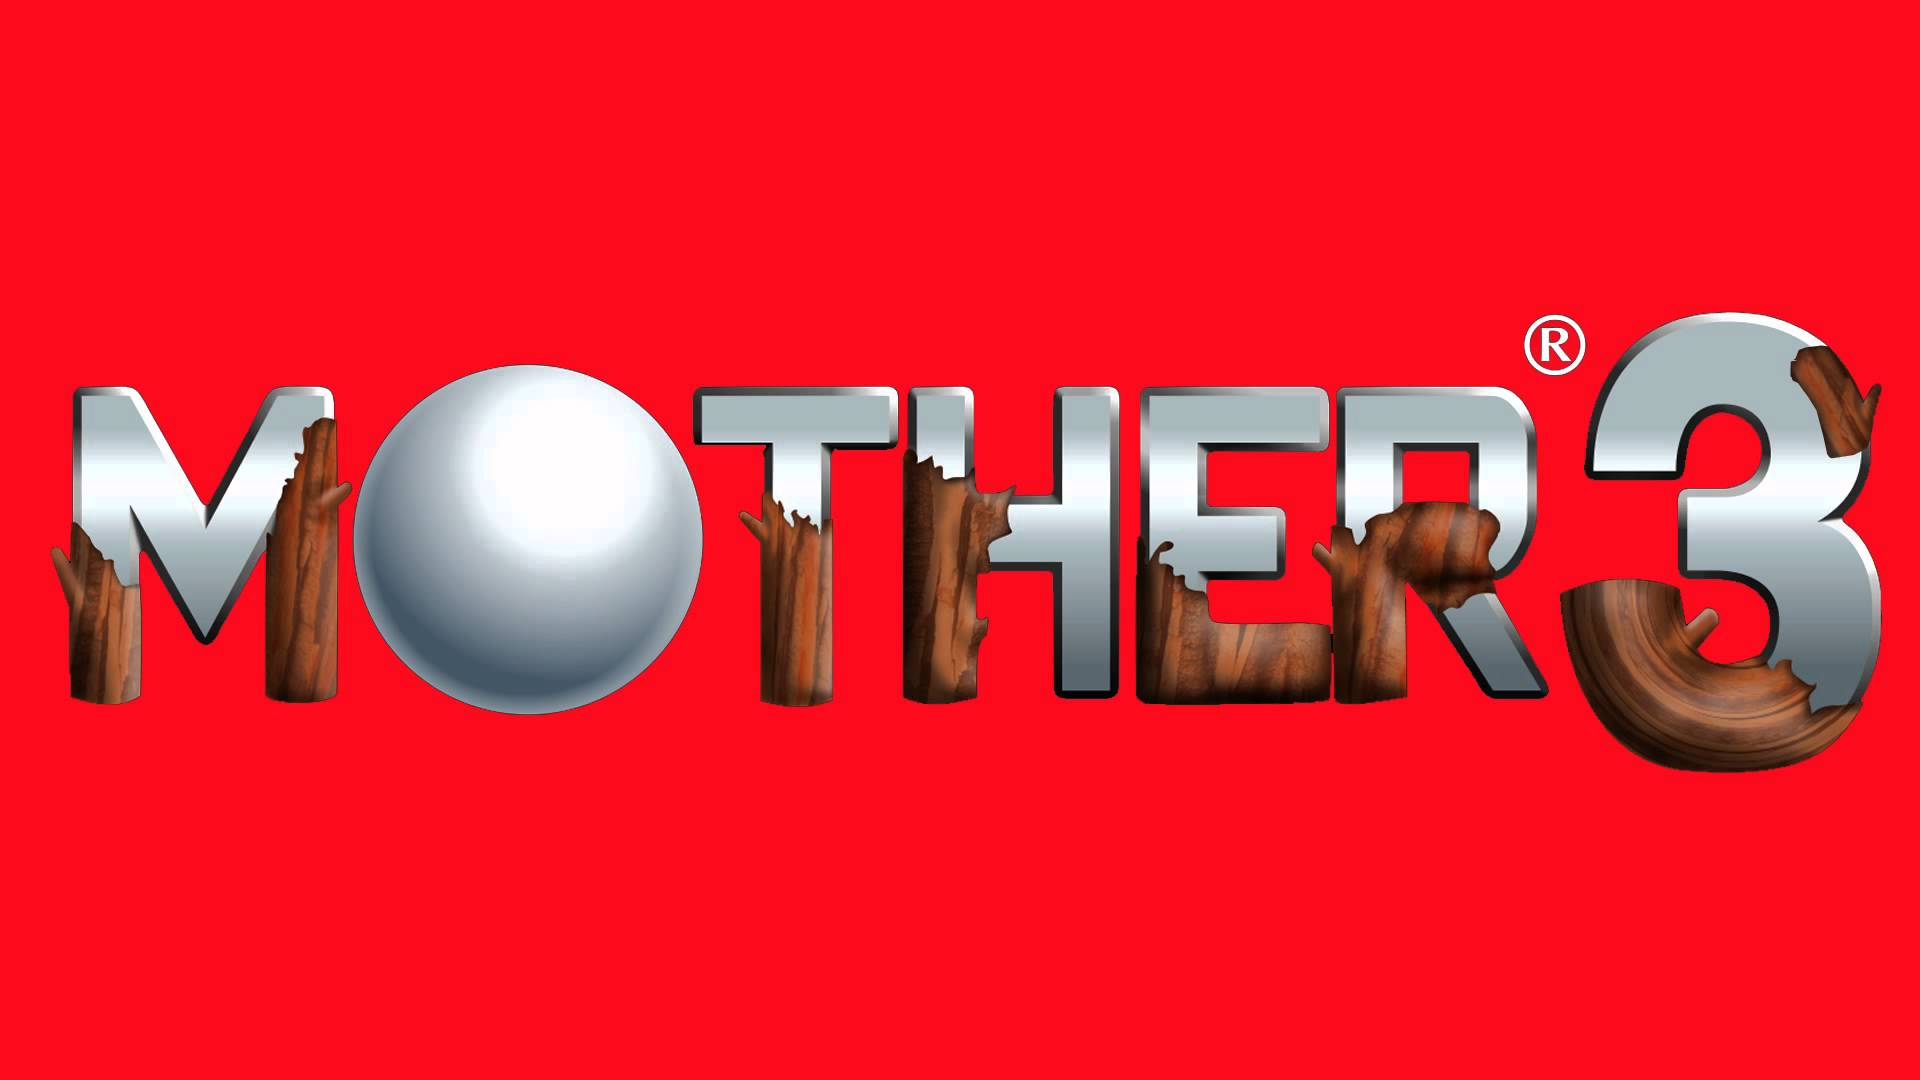 Rumor: Nintendo was planning Mother 3 localization, but decided against it due to controversial aspects